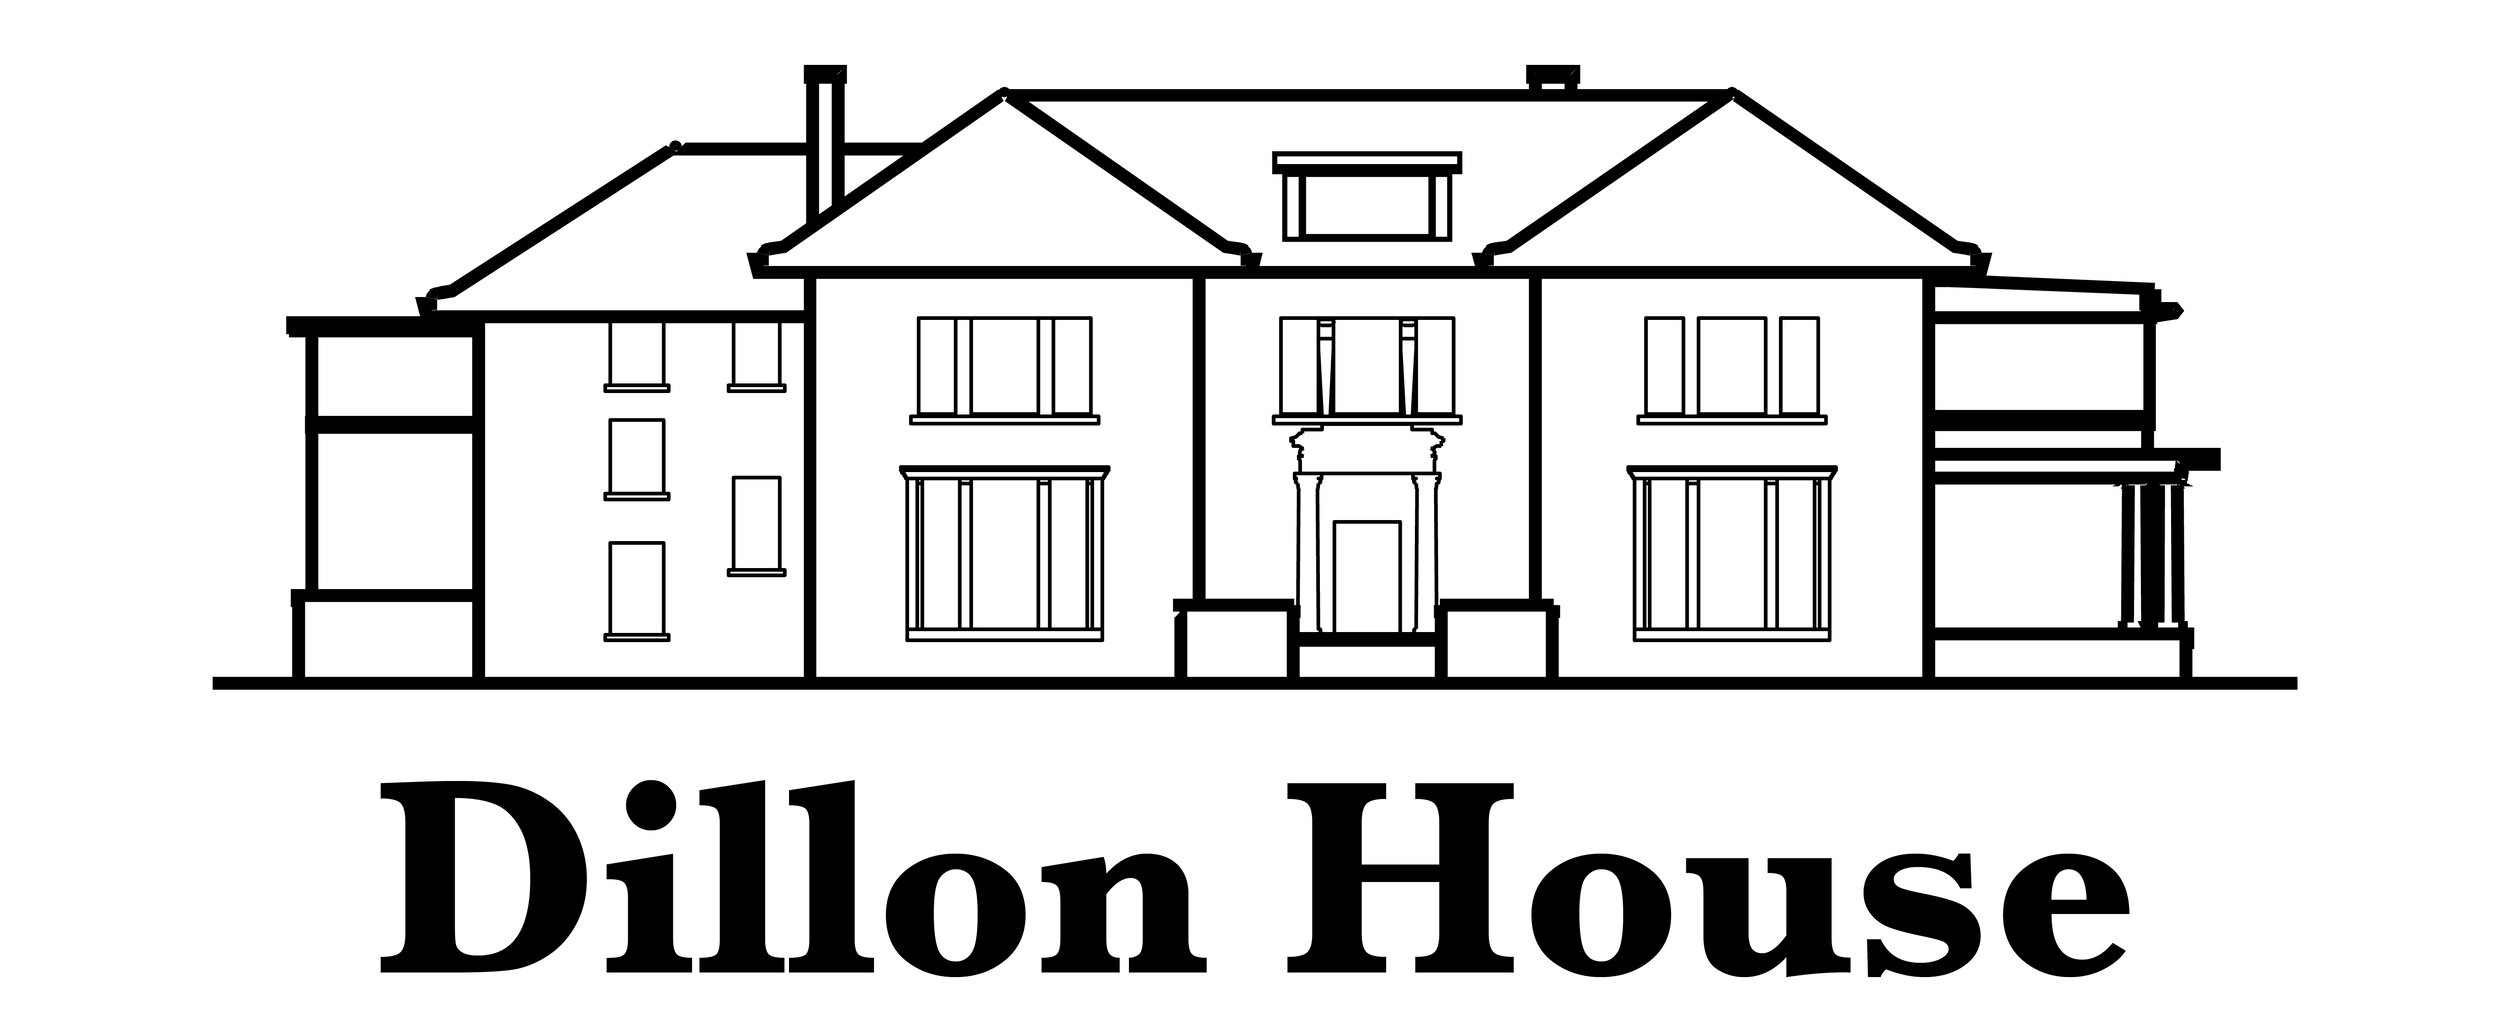 Dillon House Logo.jpg